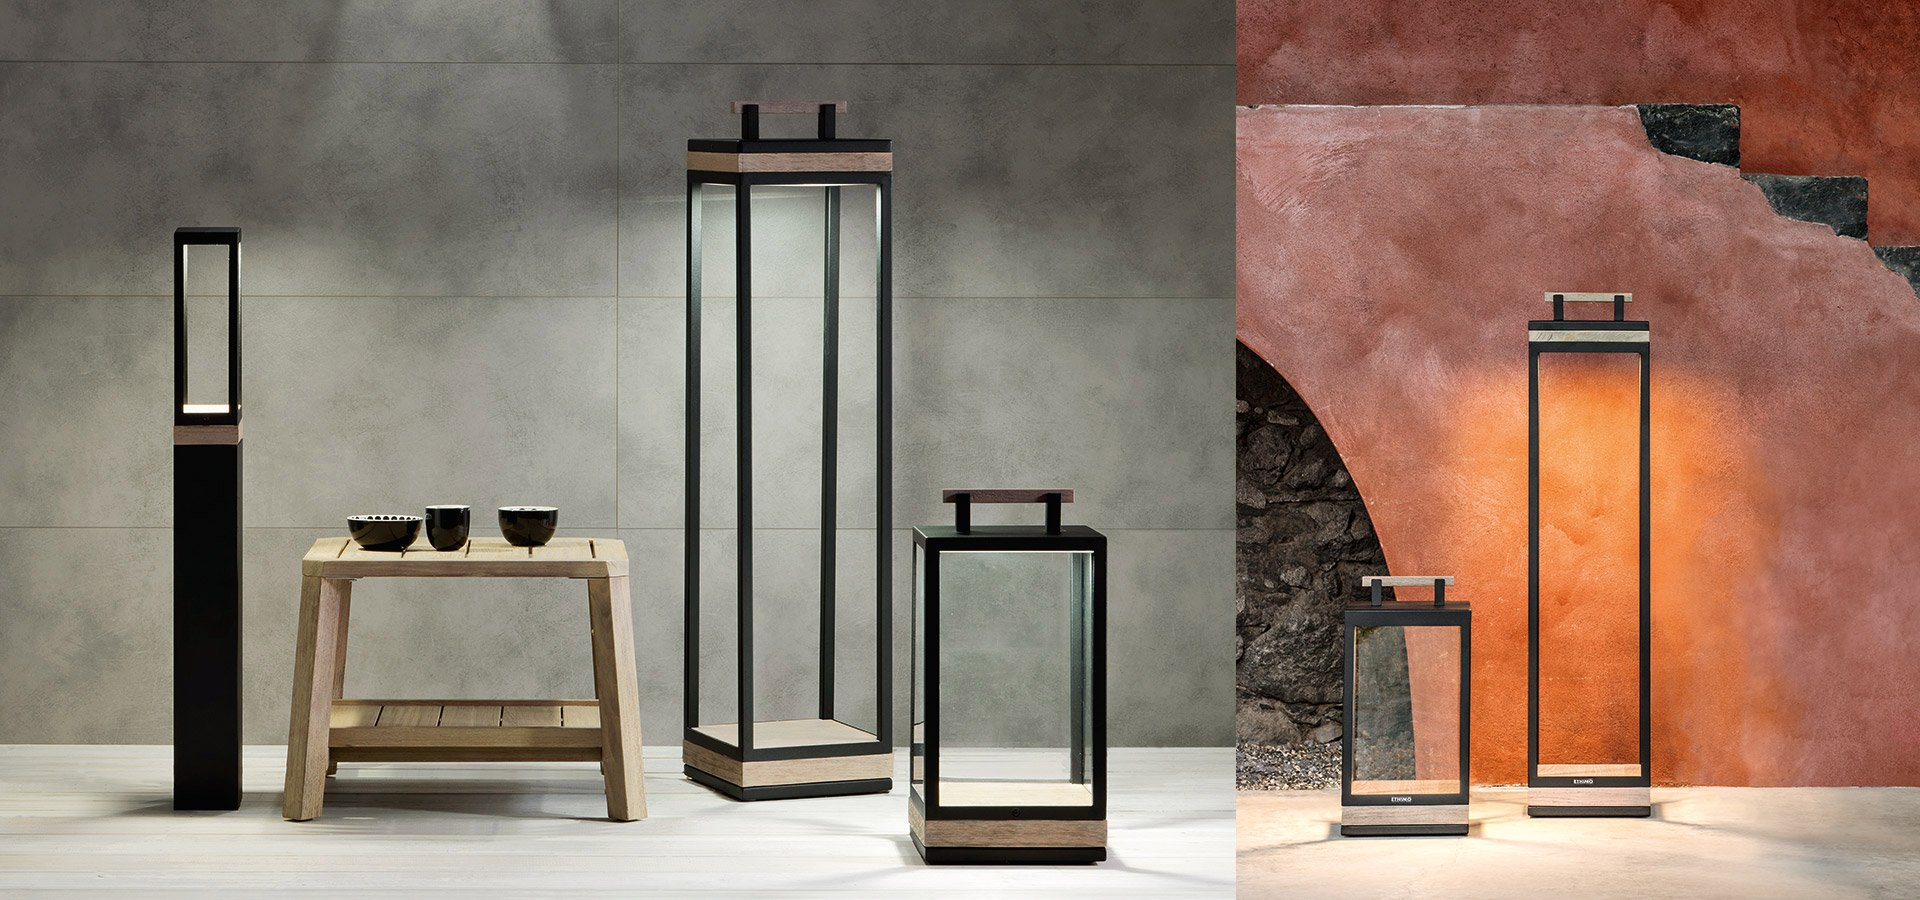 Carre Lamp lighting from Ethimo, designed by Niccolò Grassi